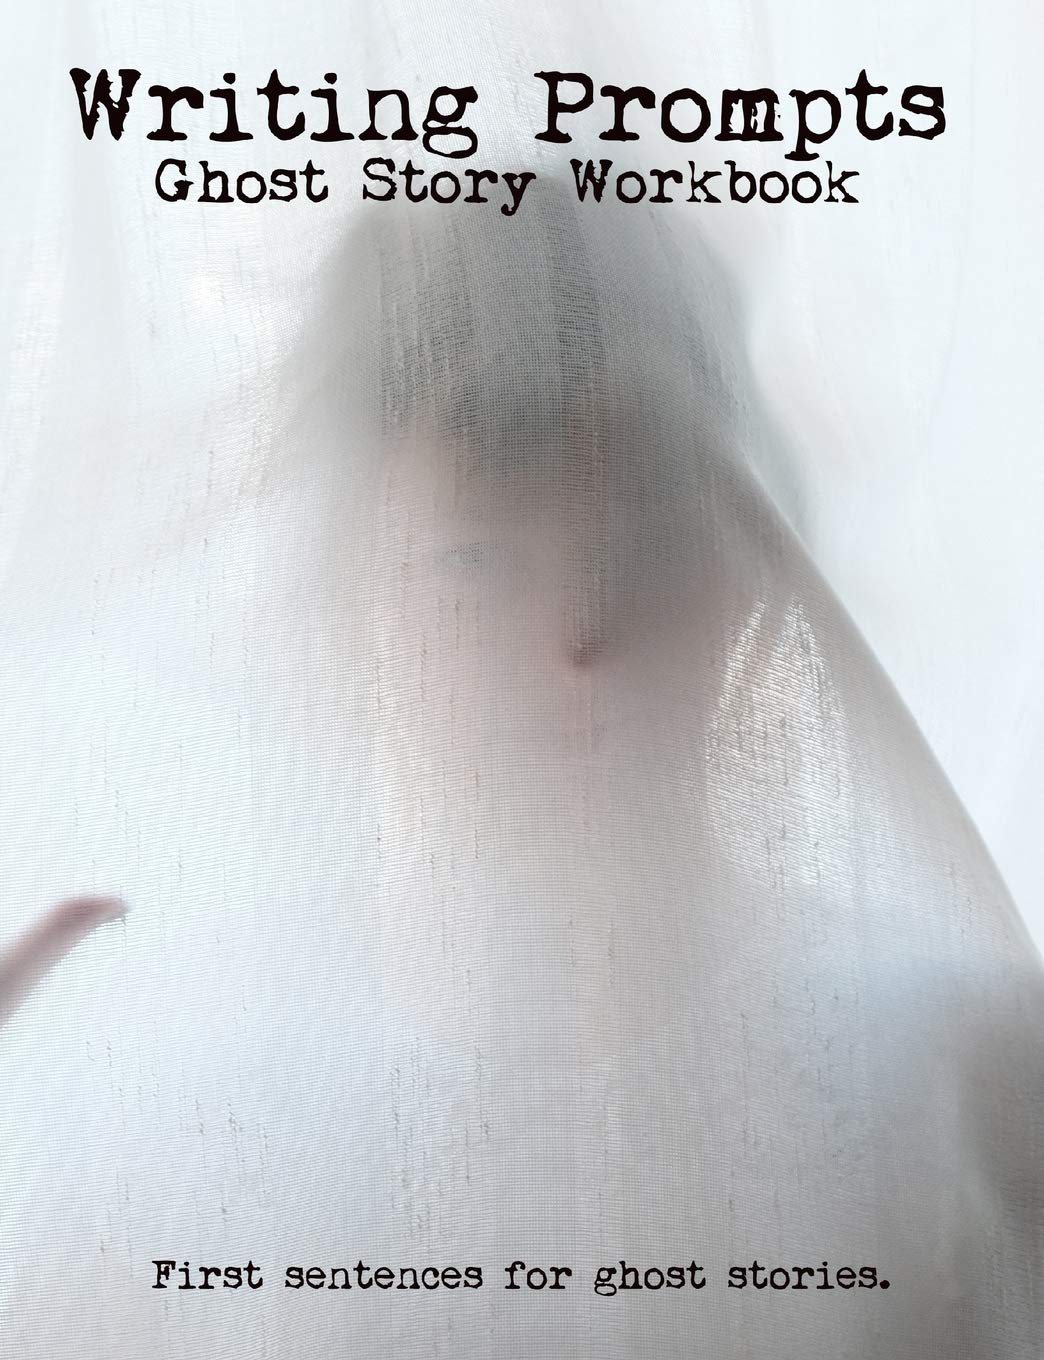 Writing Prompts Ghost Story Workbook: Your ghost short story